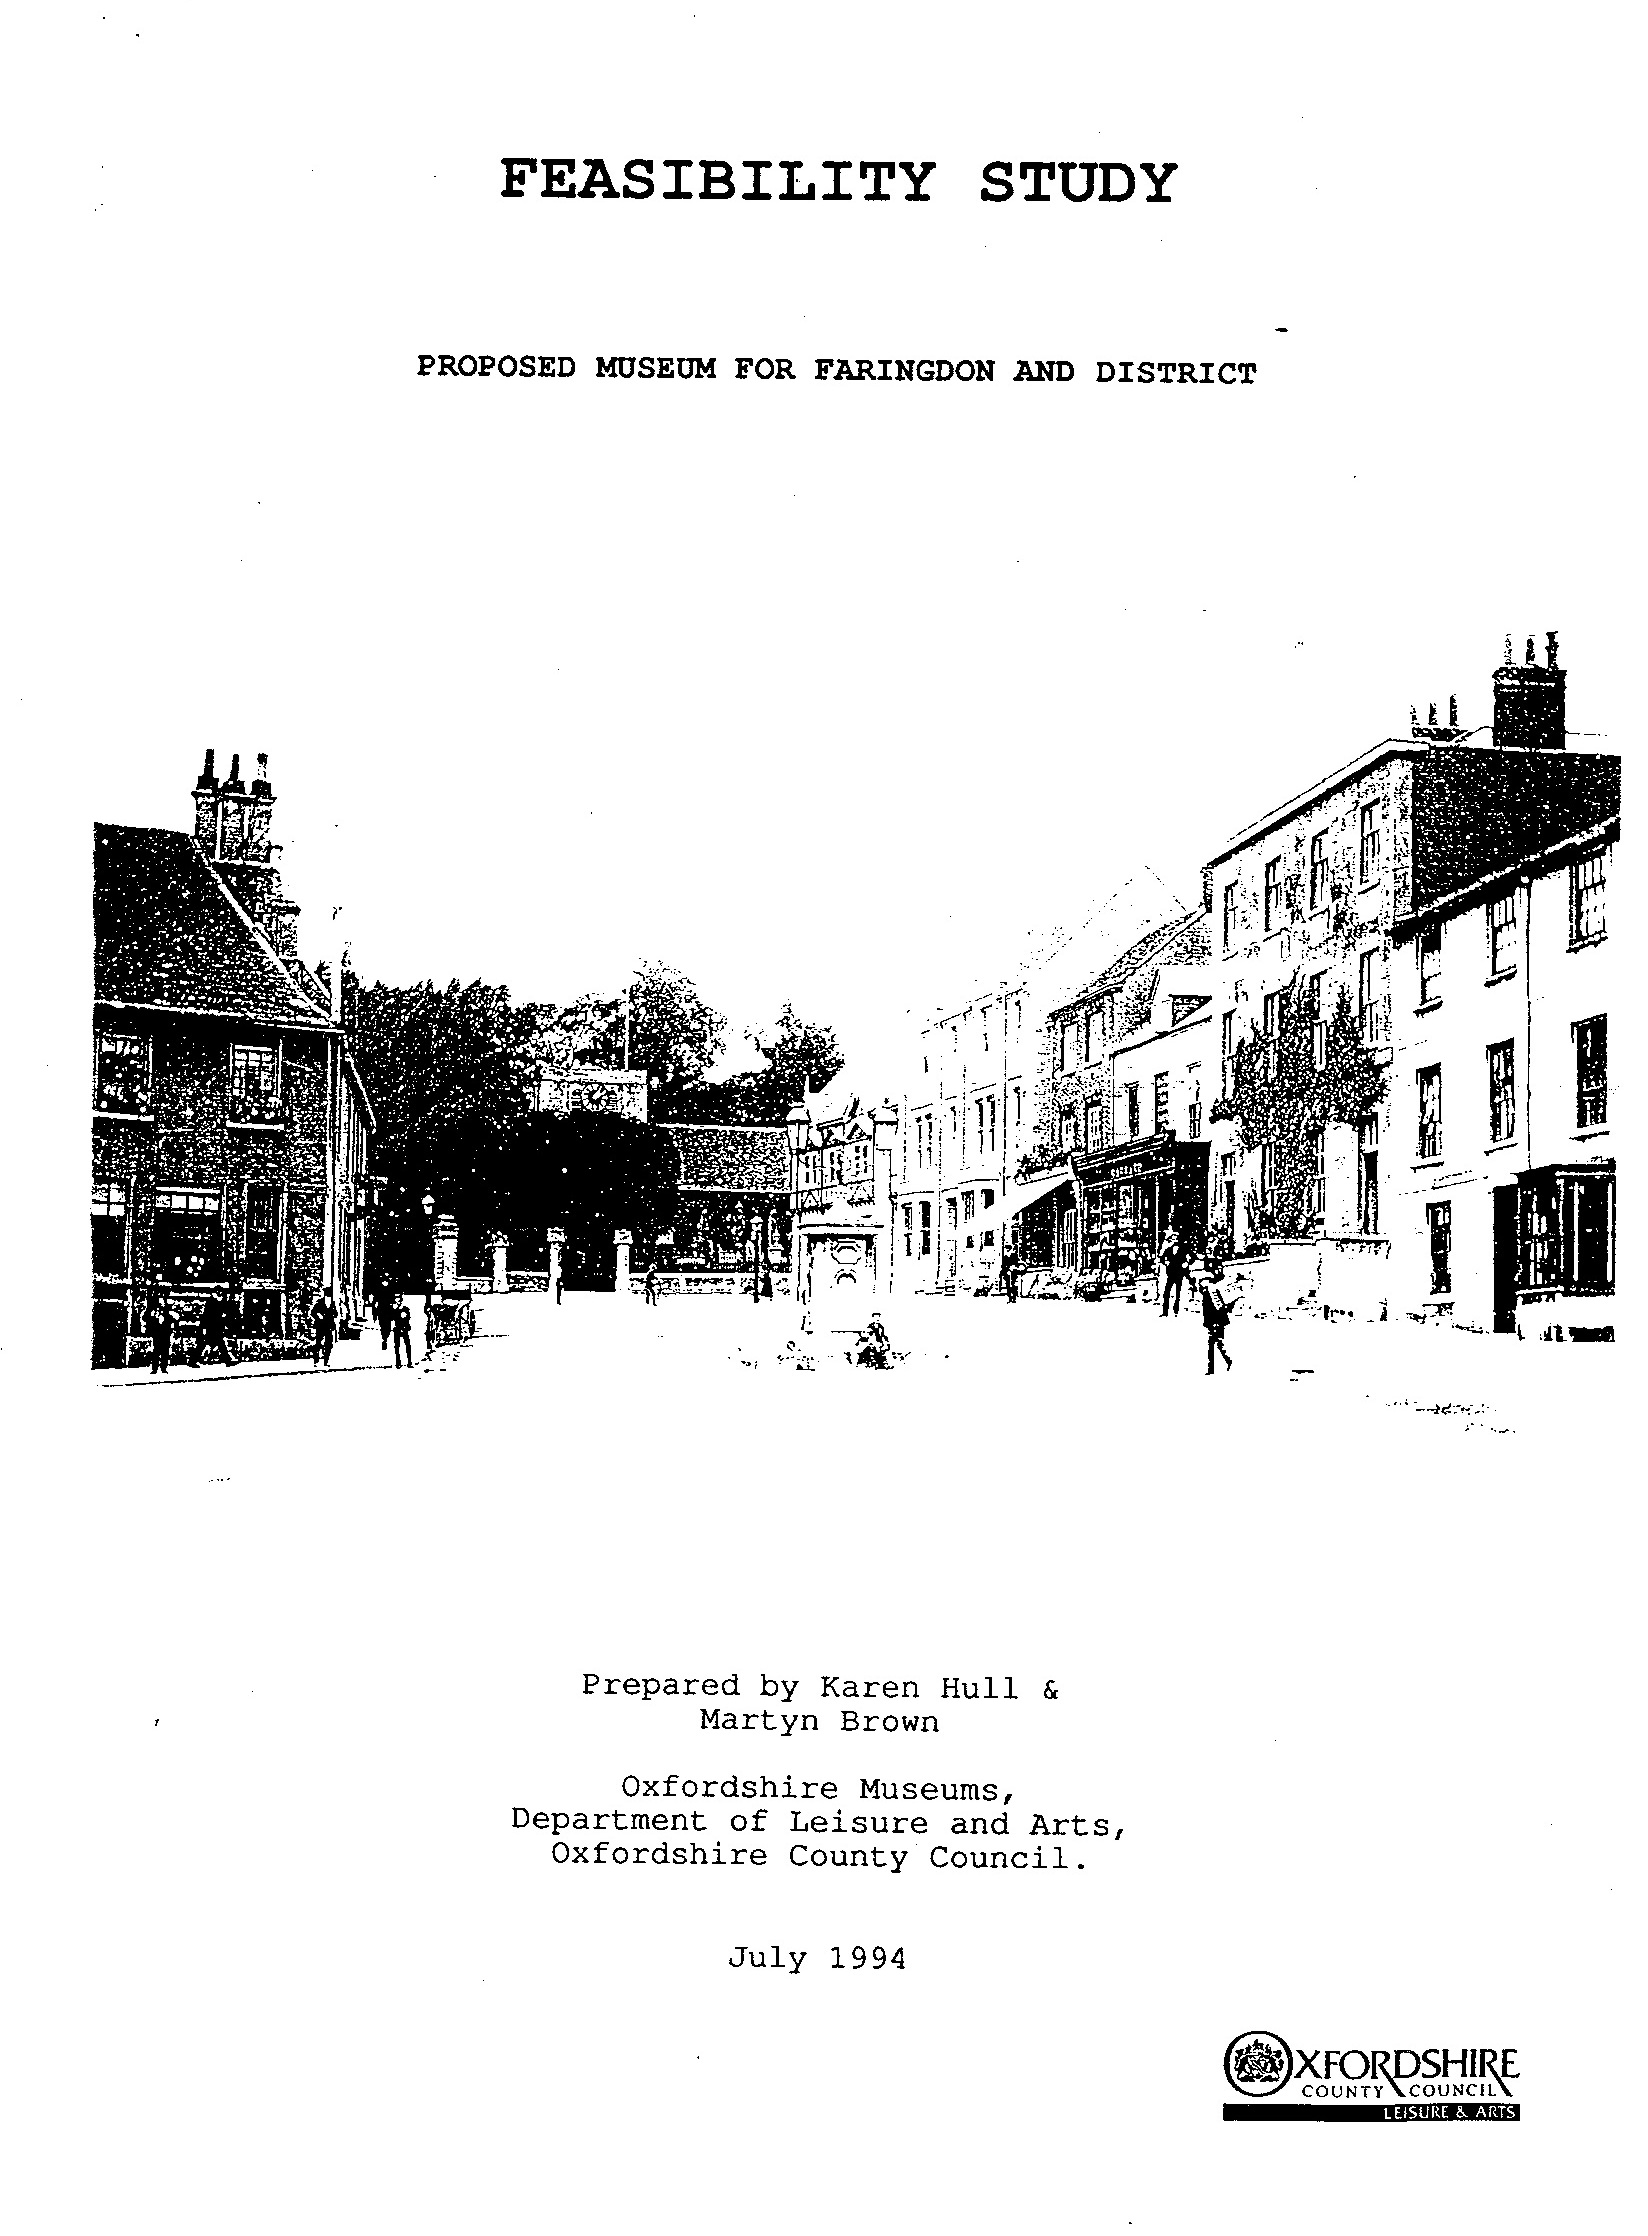 The front cover of the document